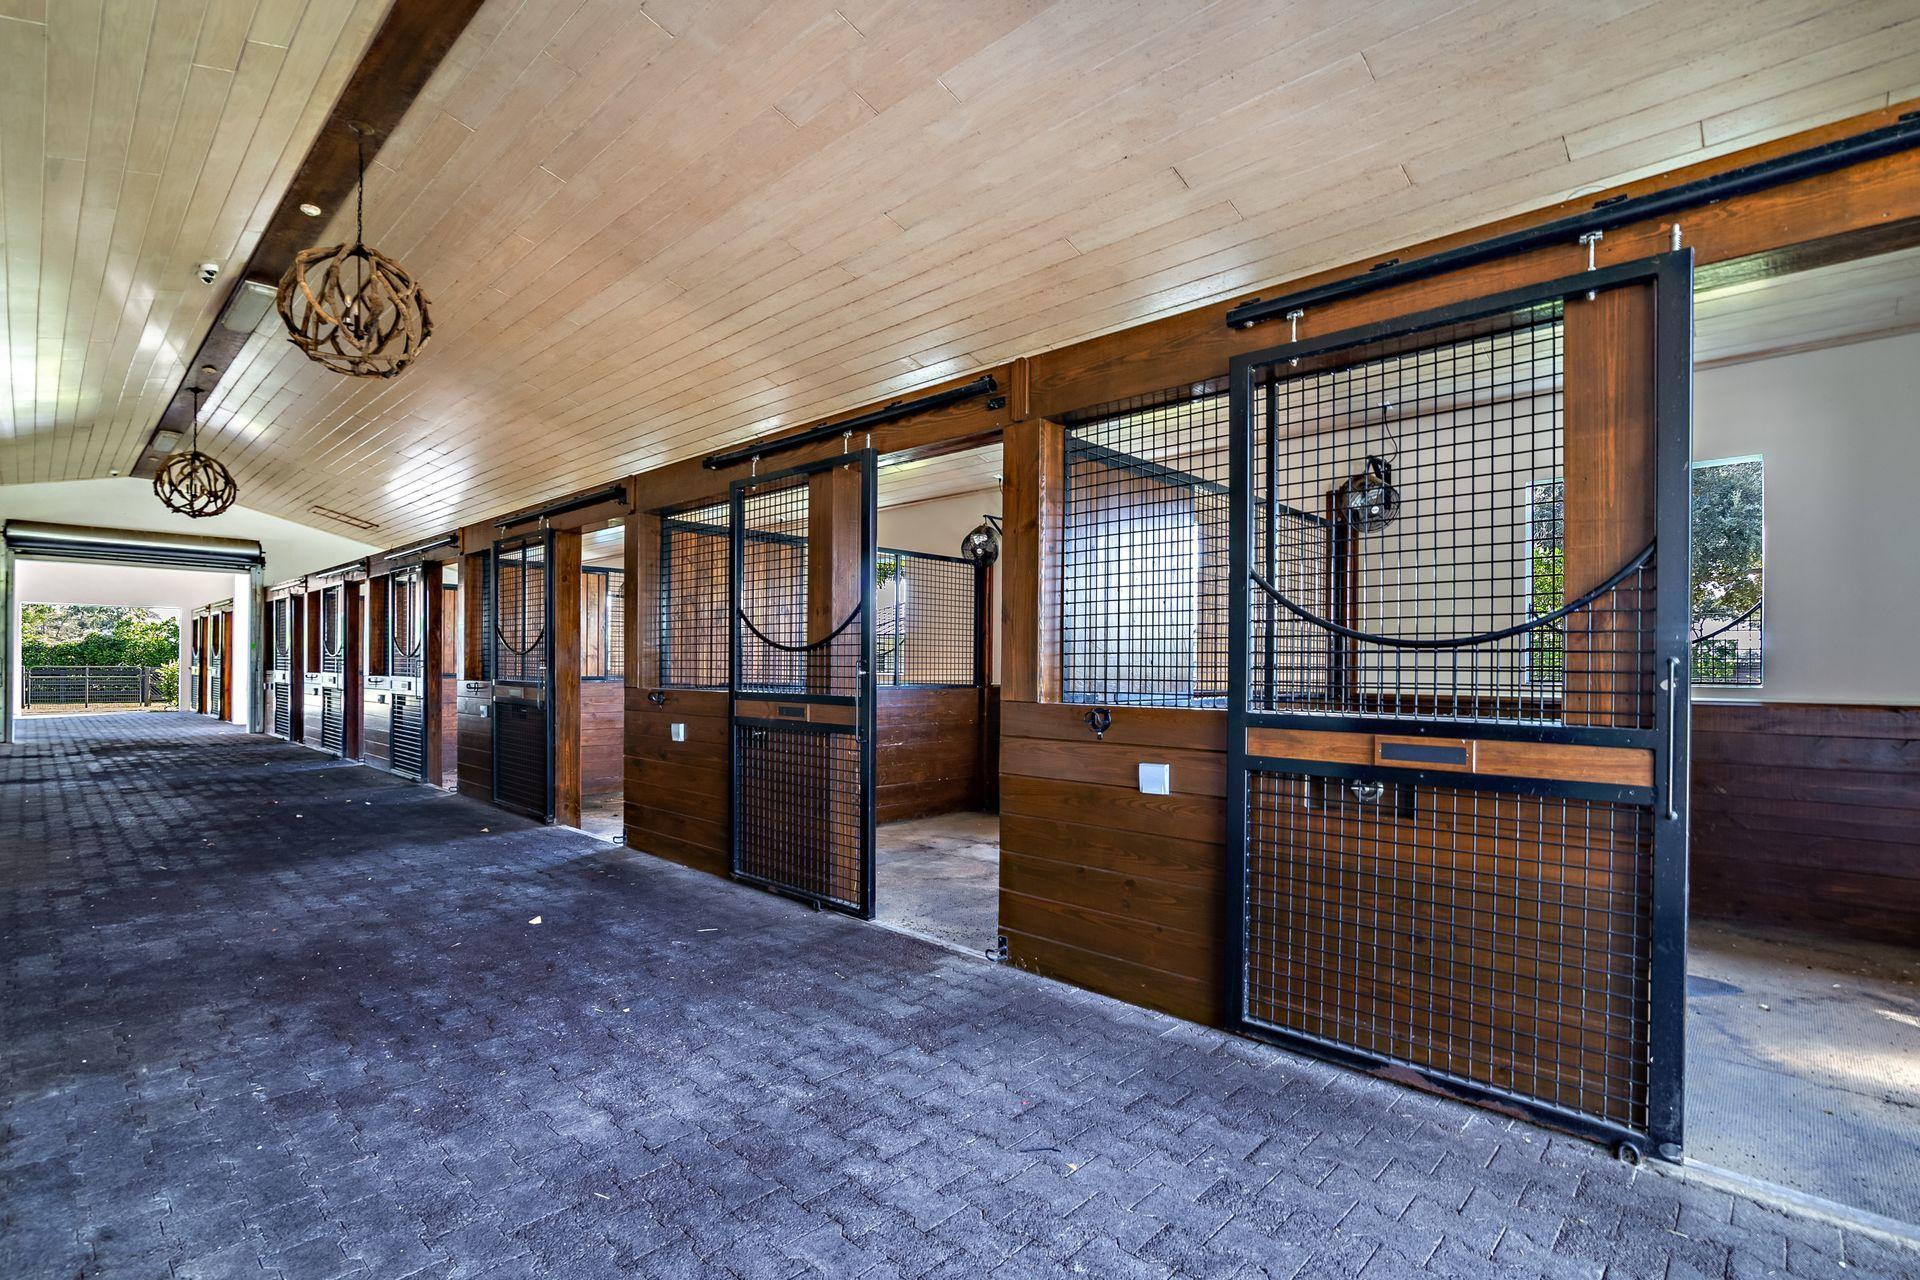 Image 2 For 14343 Equestrian Way